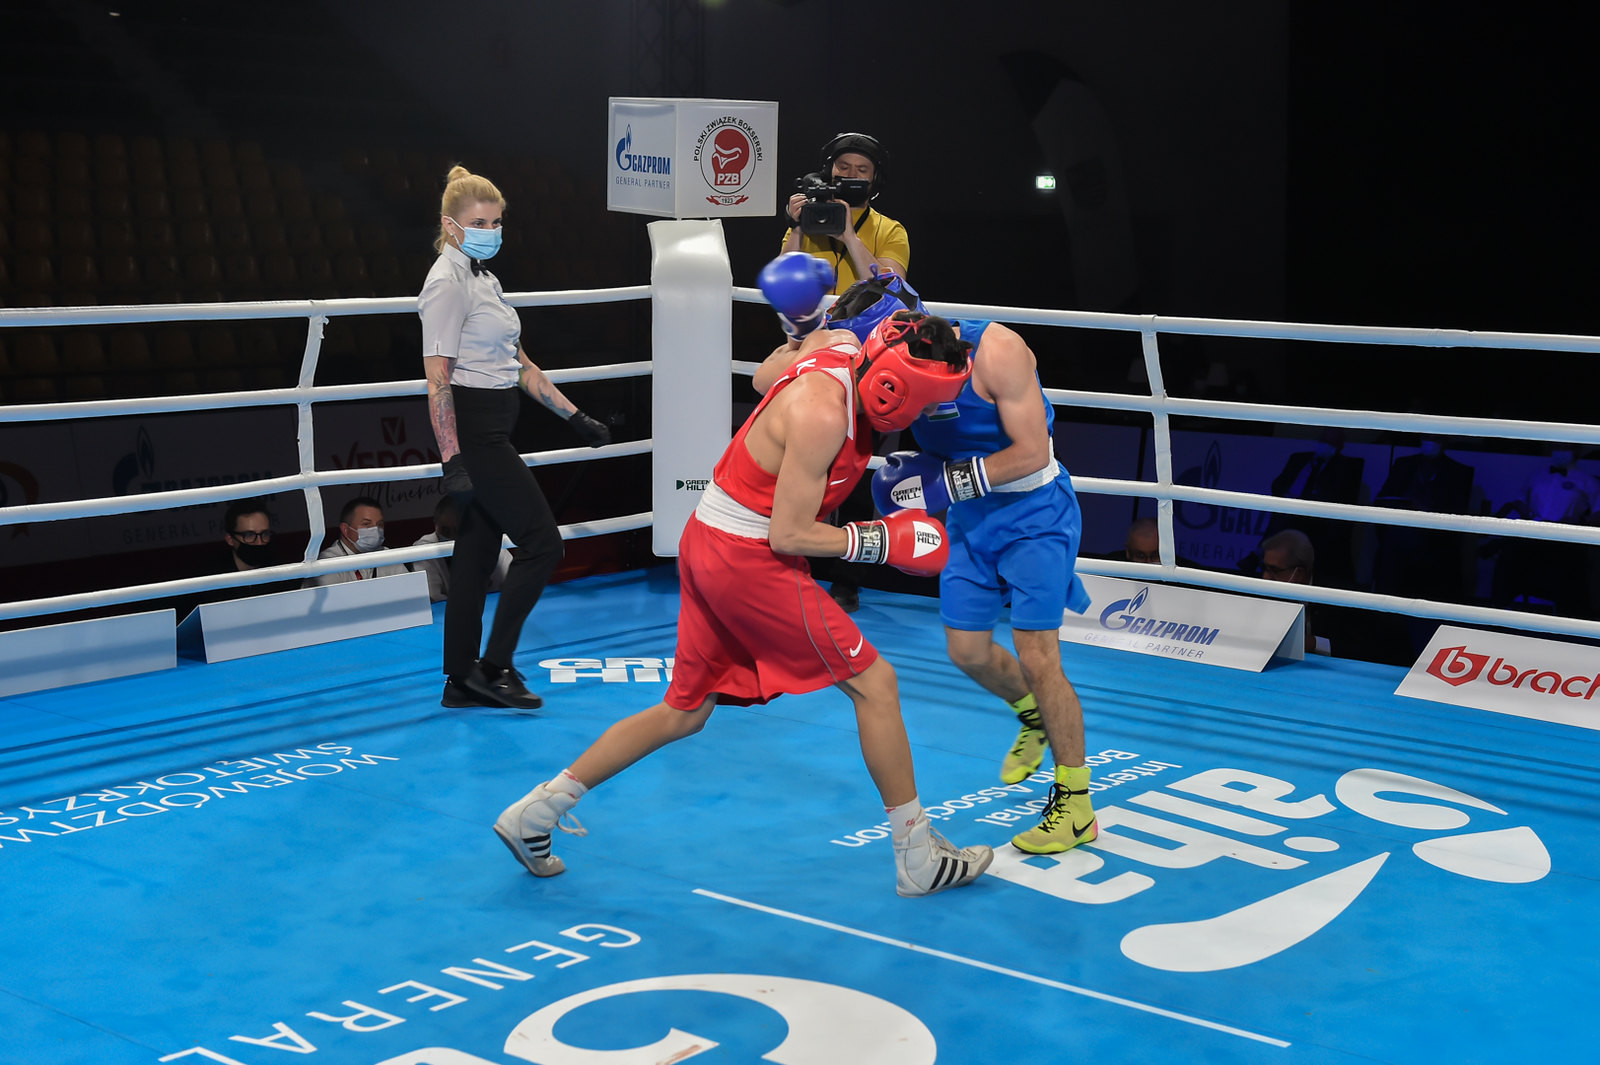 More than 400 boxers from 52 countries are due to compete at the Championships ©AIBA